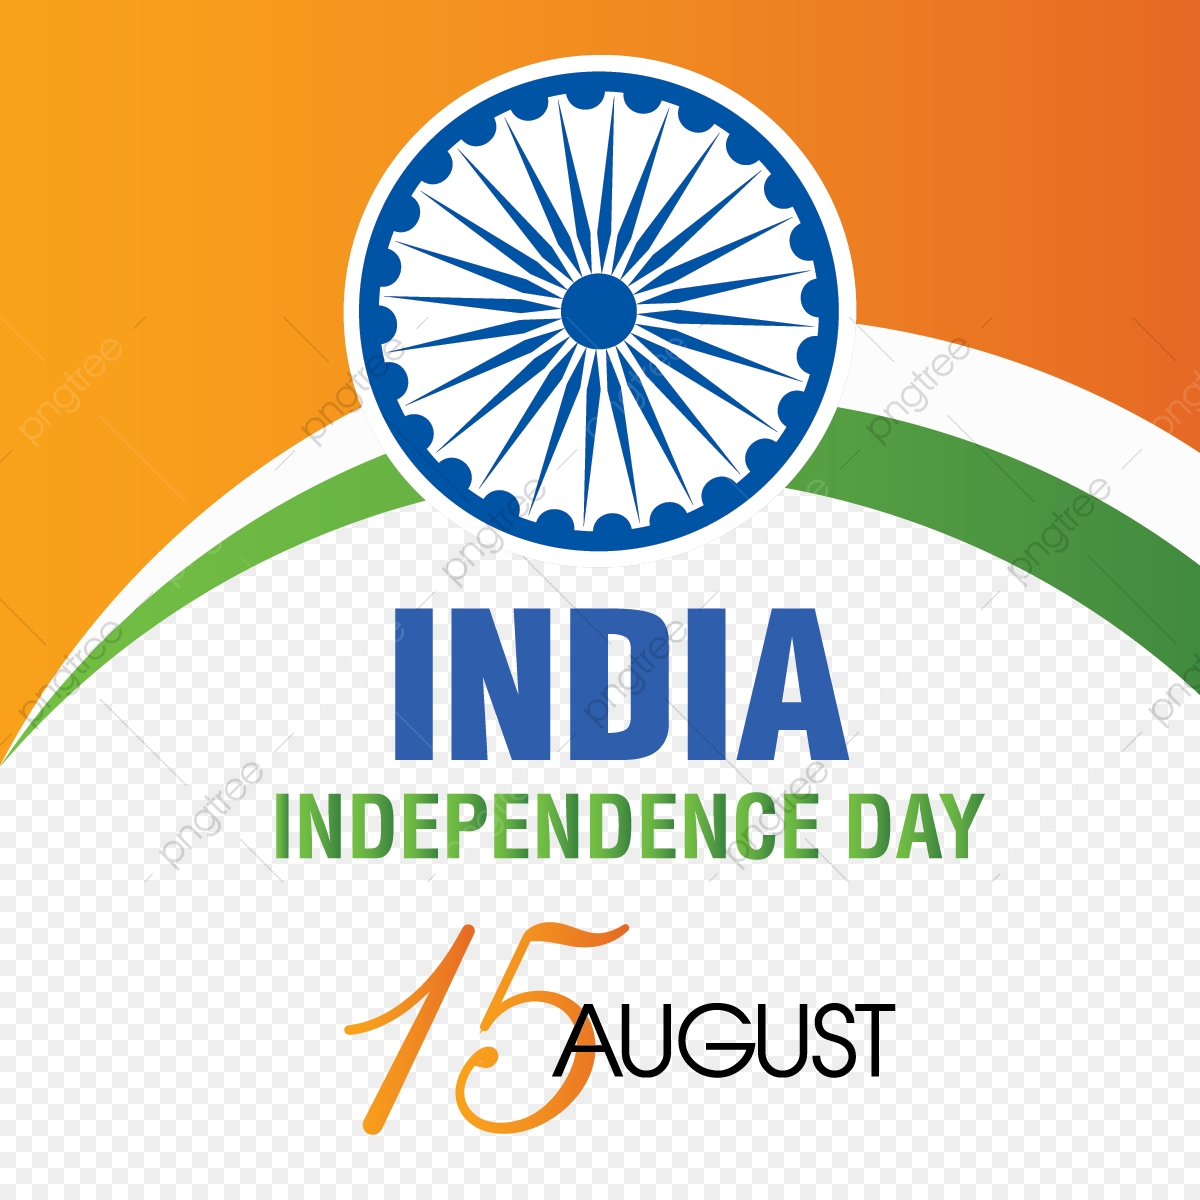 15 august png background full hd creative independence day of india th august freedom with